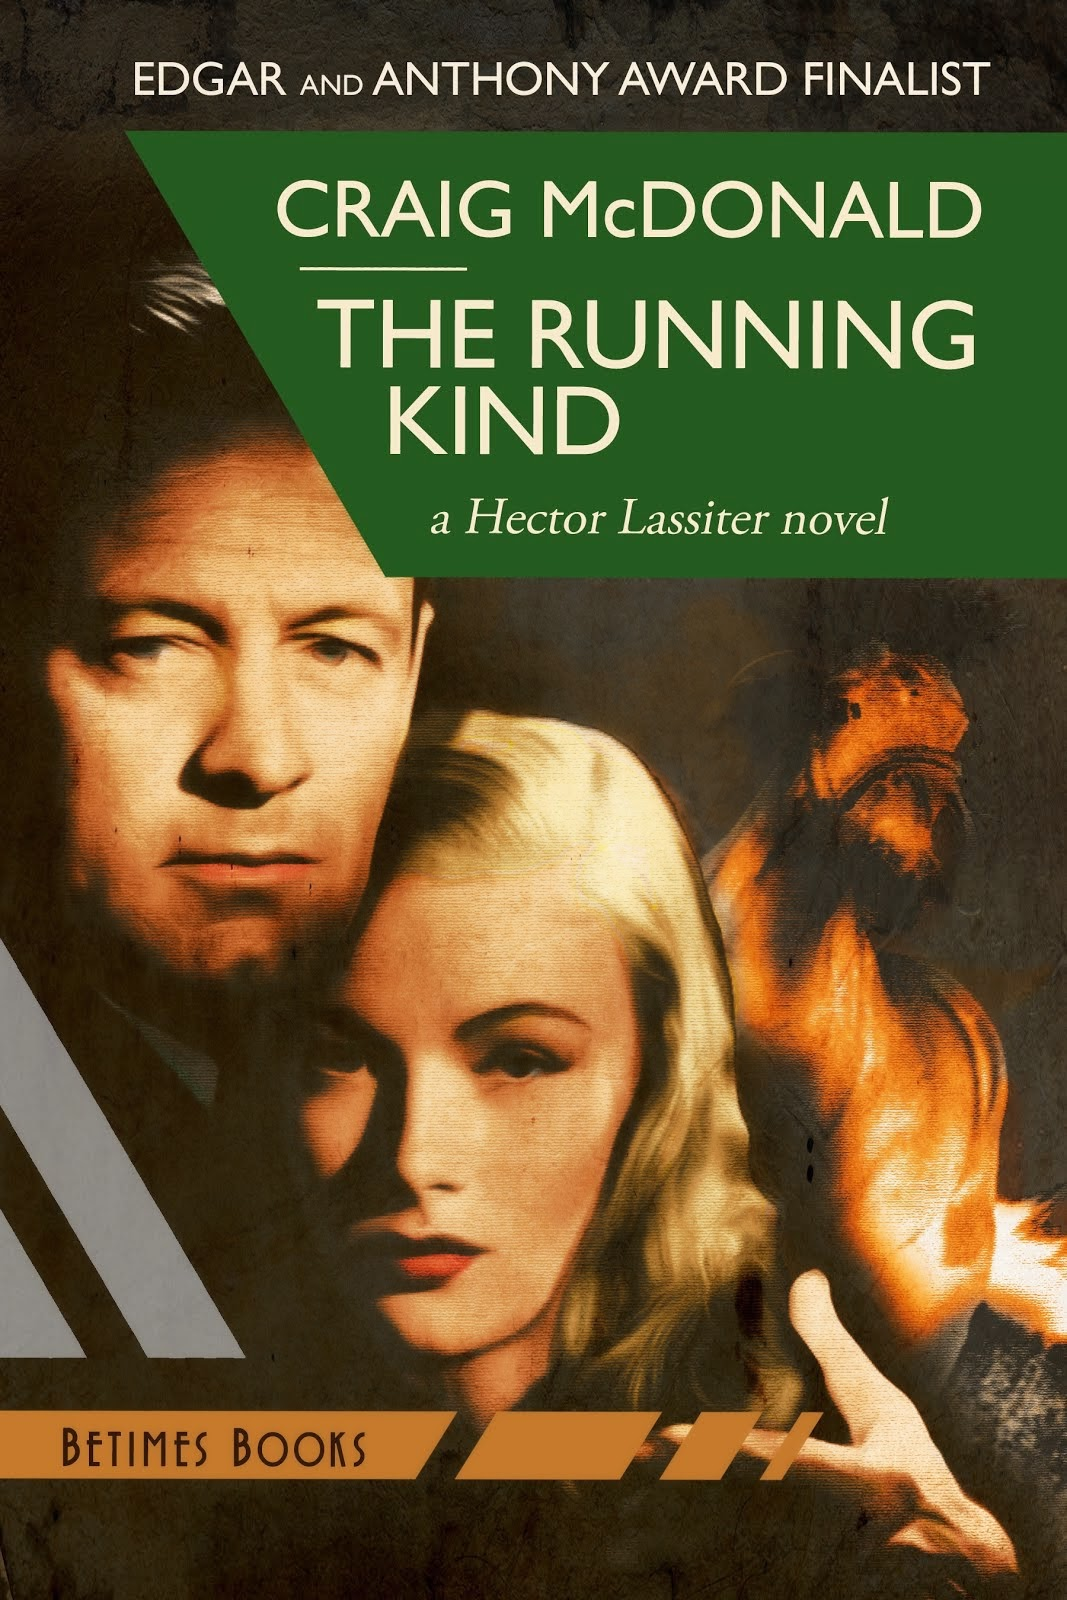 THE RUNNING KIND